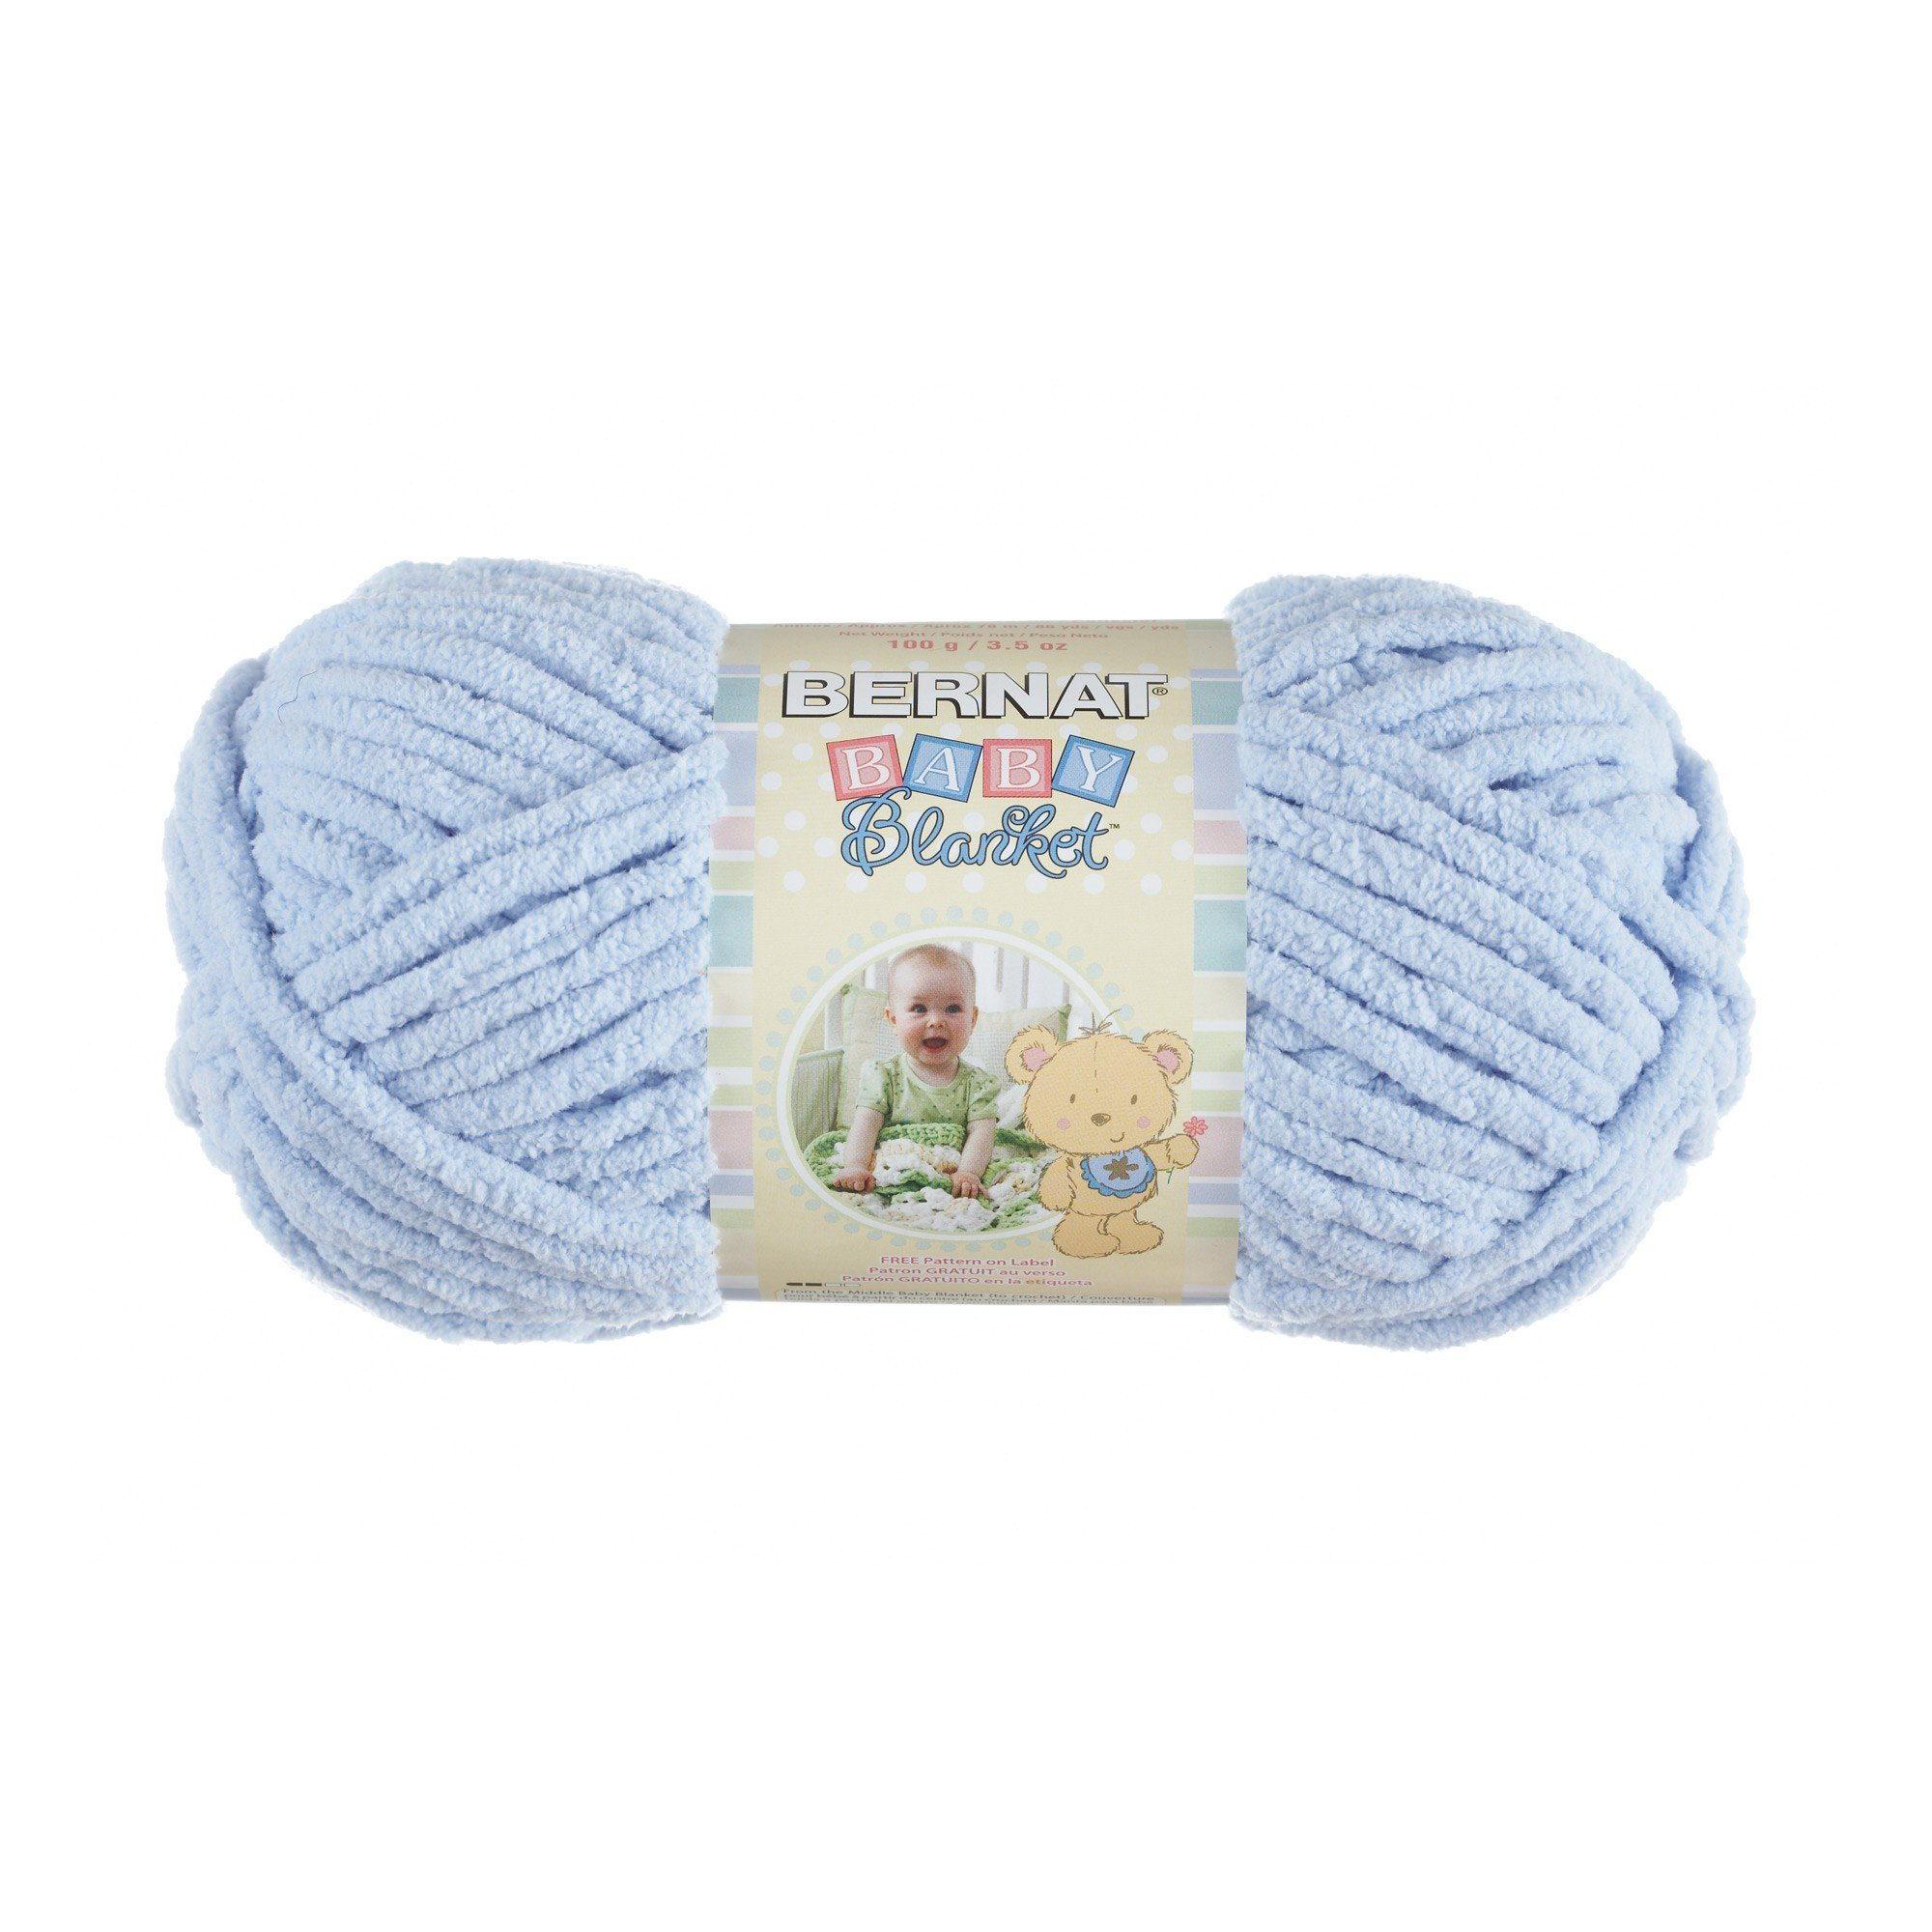 BERNAT Baby Blanket Yarn, 3.5oz, 6-Pack (White/Baby Blue) by Bernat (Image #2)